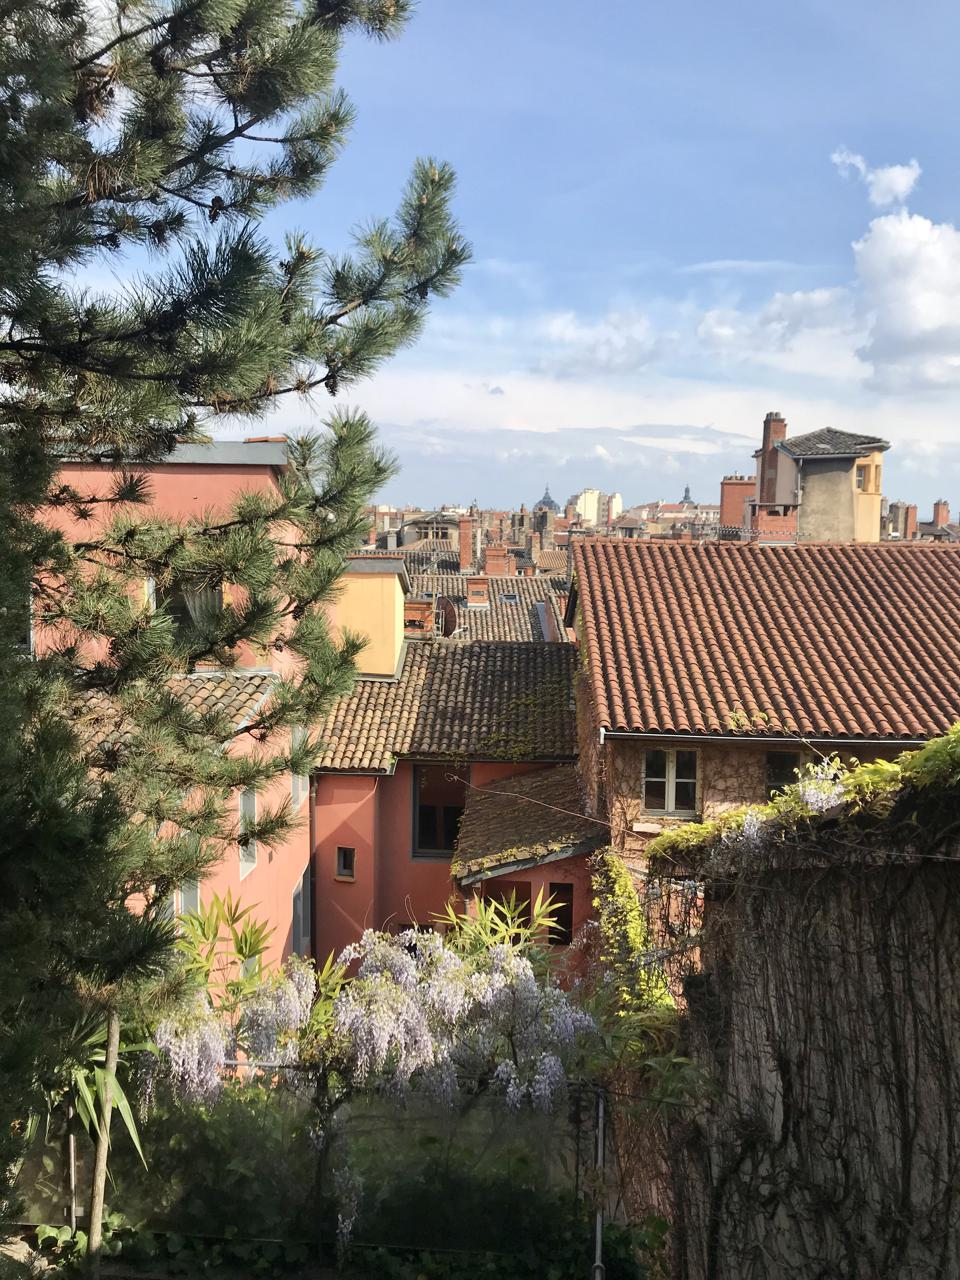 View over the Old Lyon from the Hanging Garden at Cour Des Loges